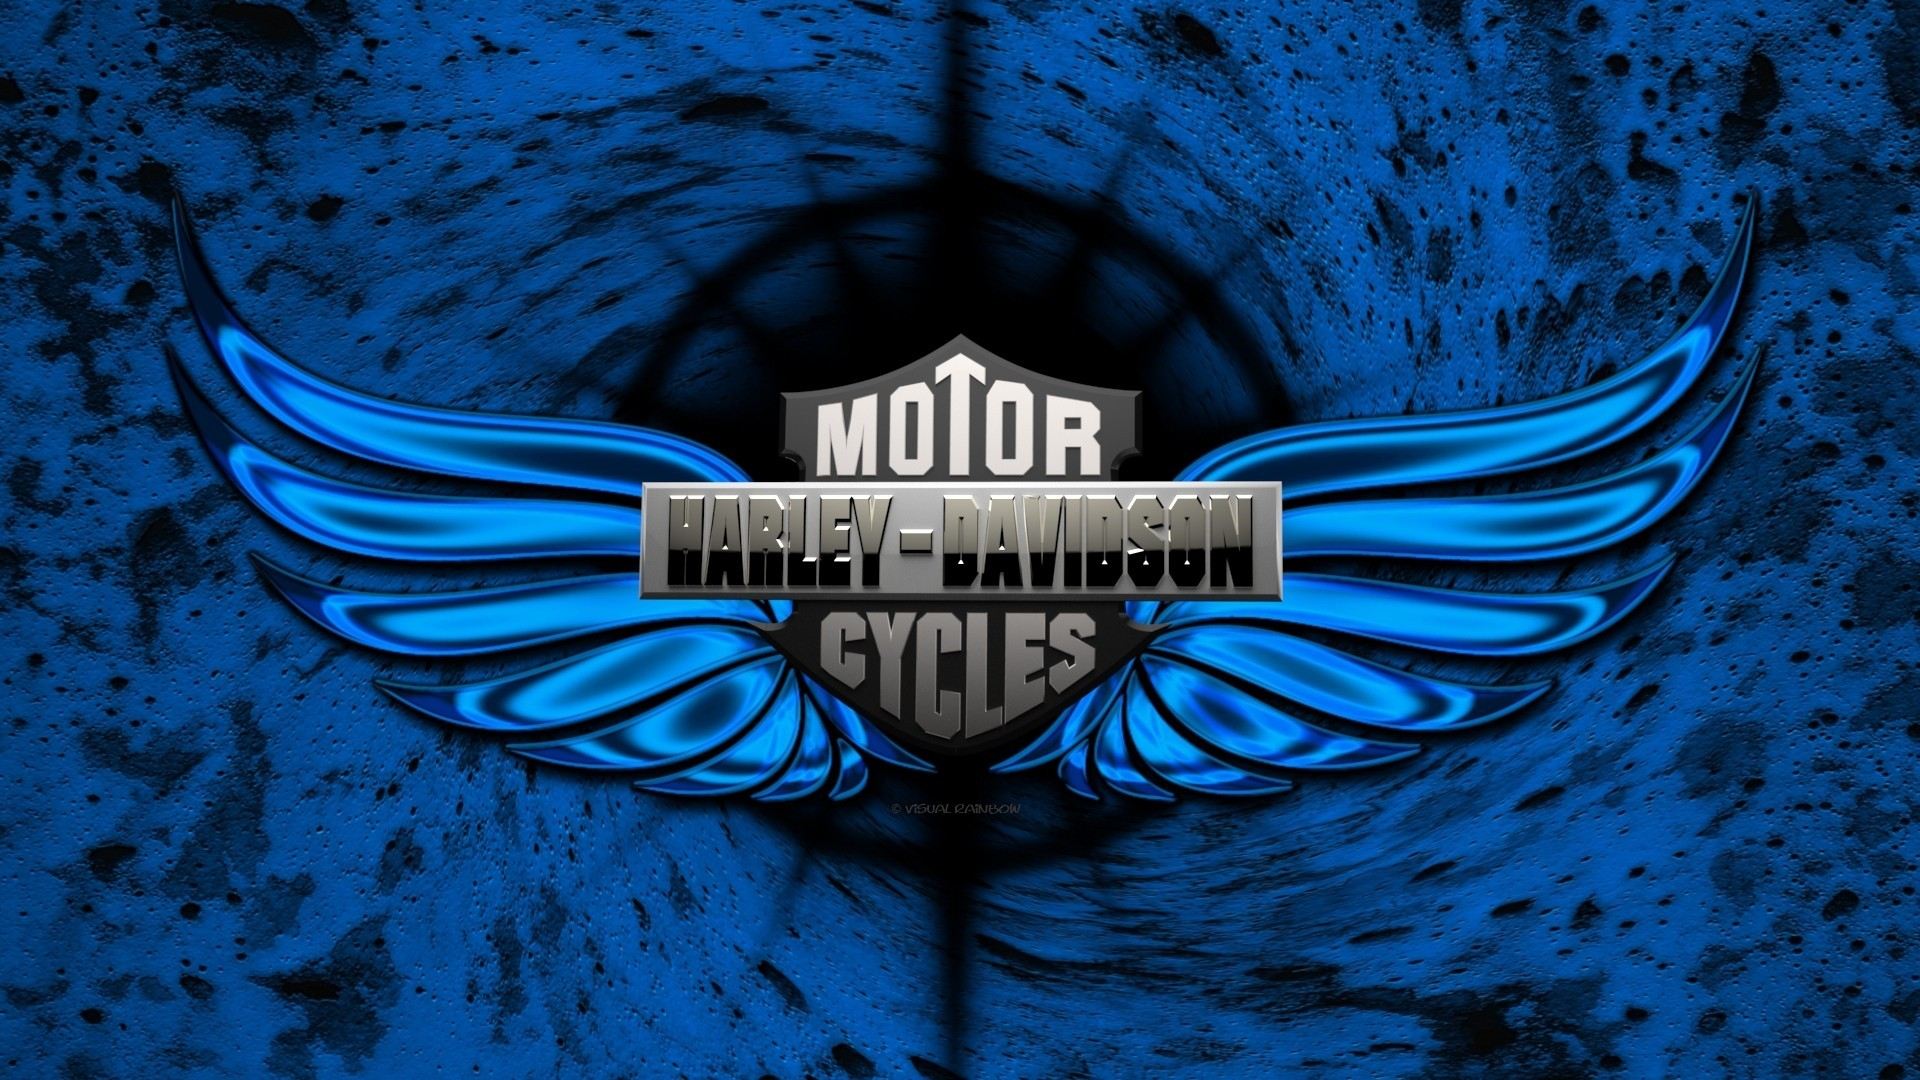 Miller Harley Davidson Blue Wallpapers For Iphone HQ Backgrounds 1920x1080